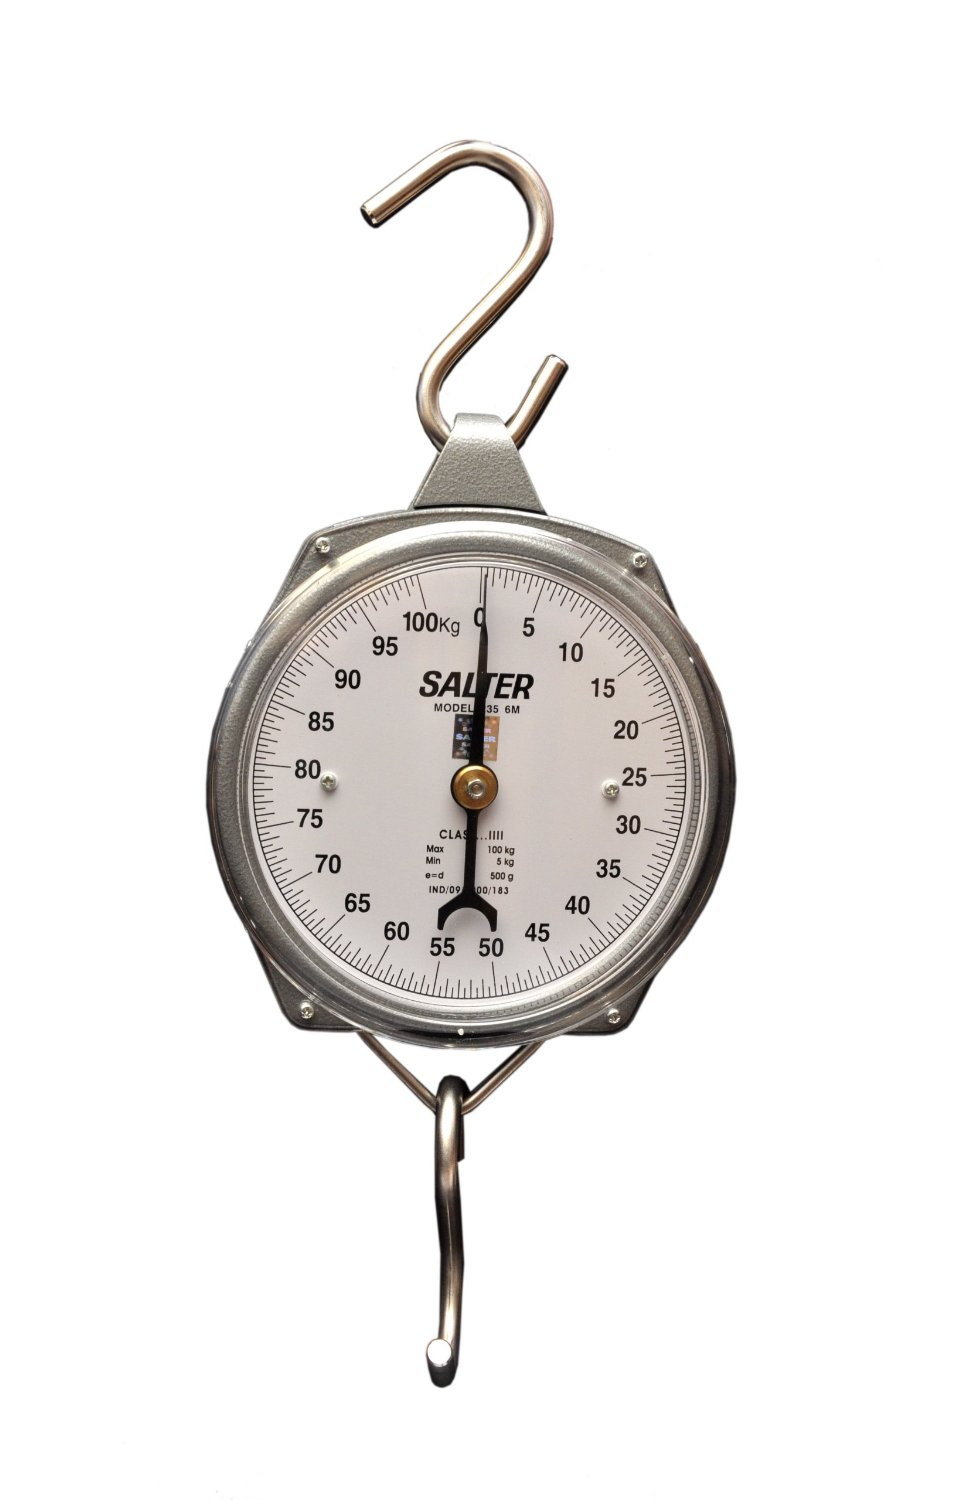 Quantity For Measuring Instruments : Buy salter m measuring capacity kg hanging scale